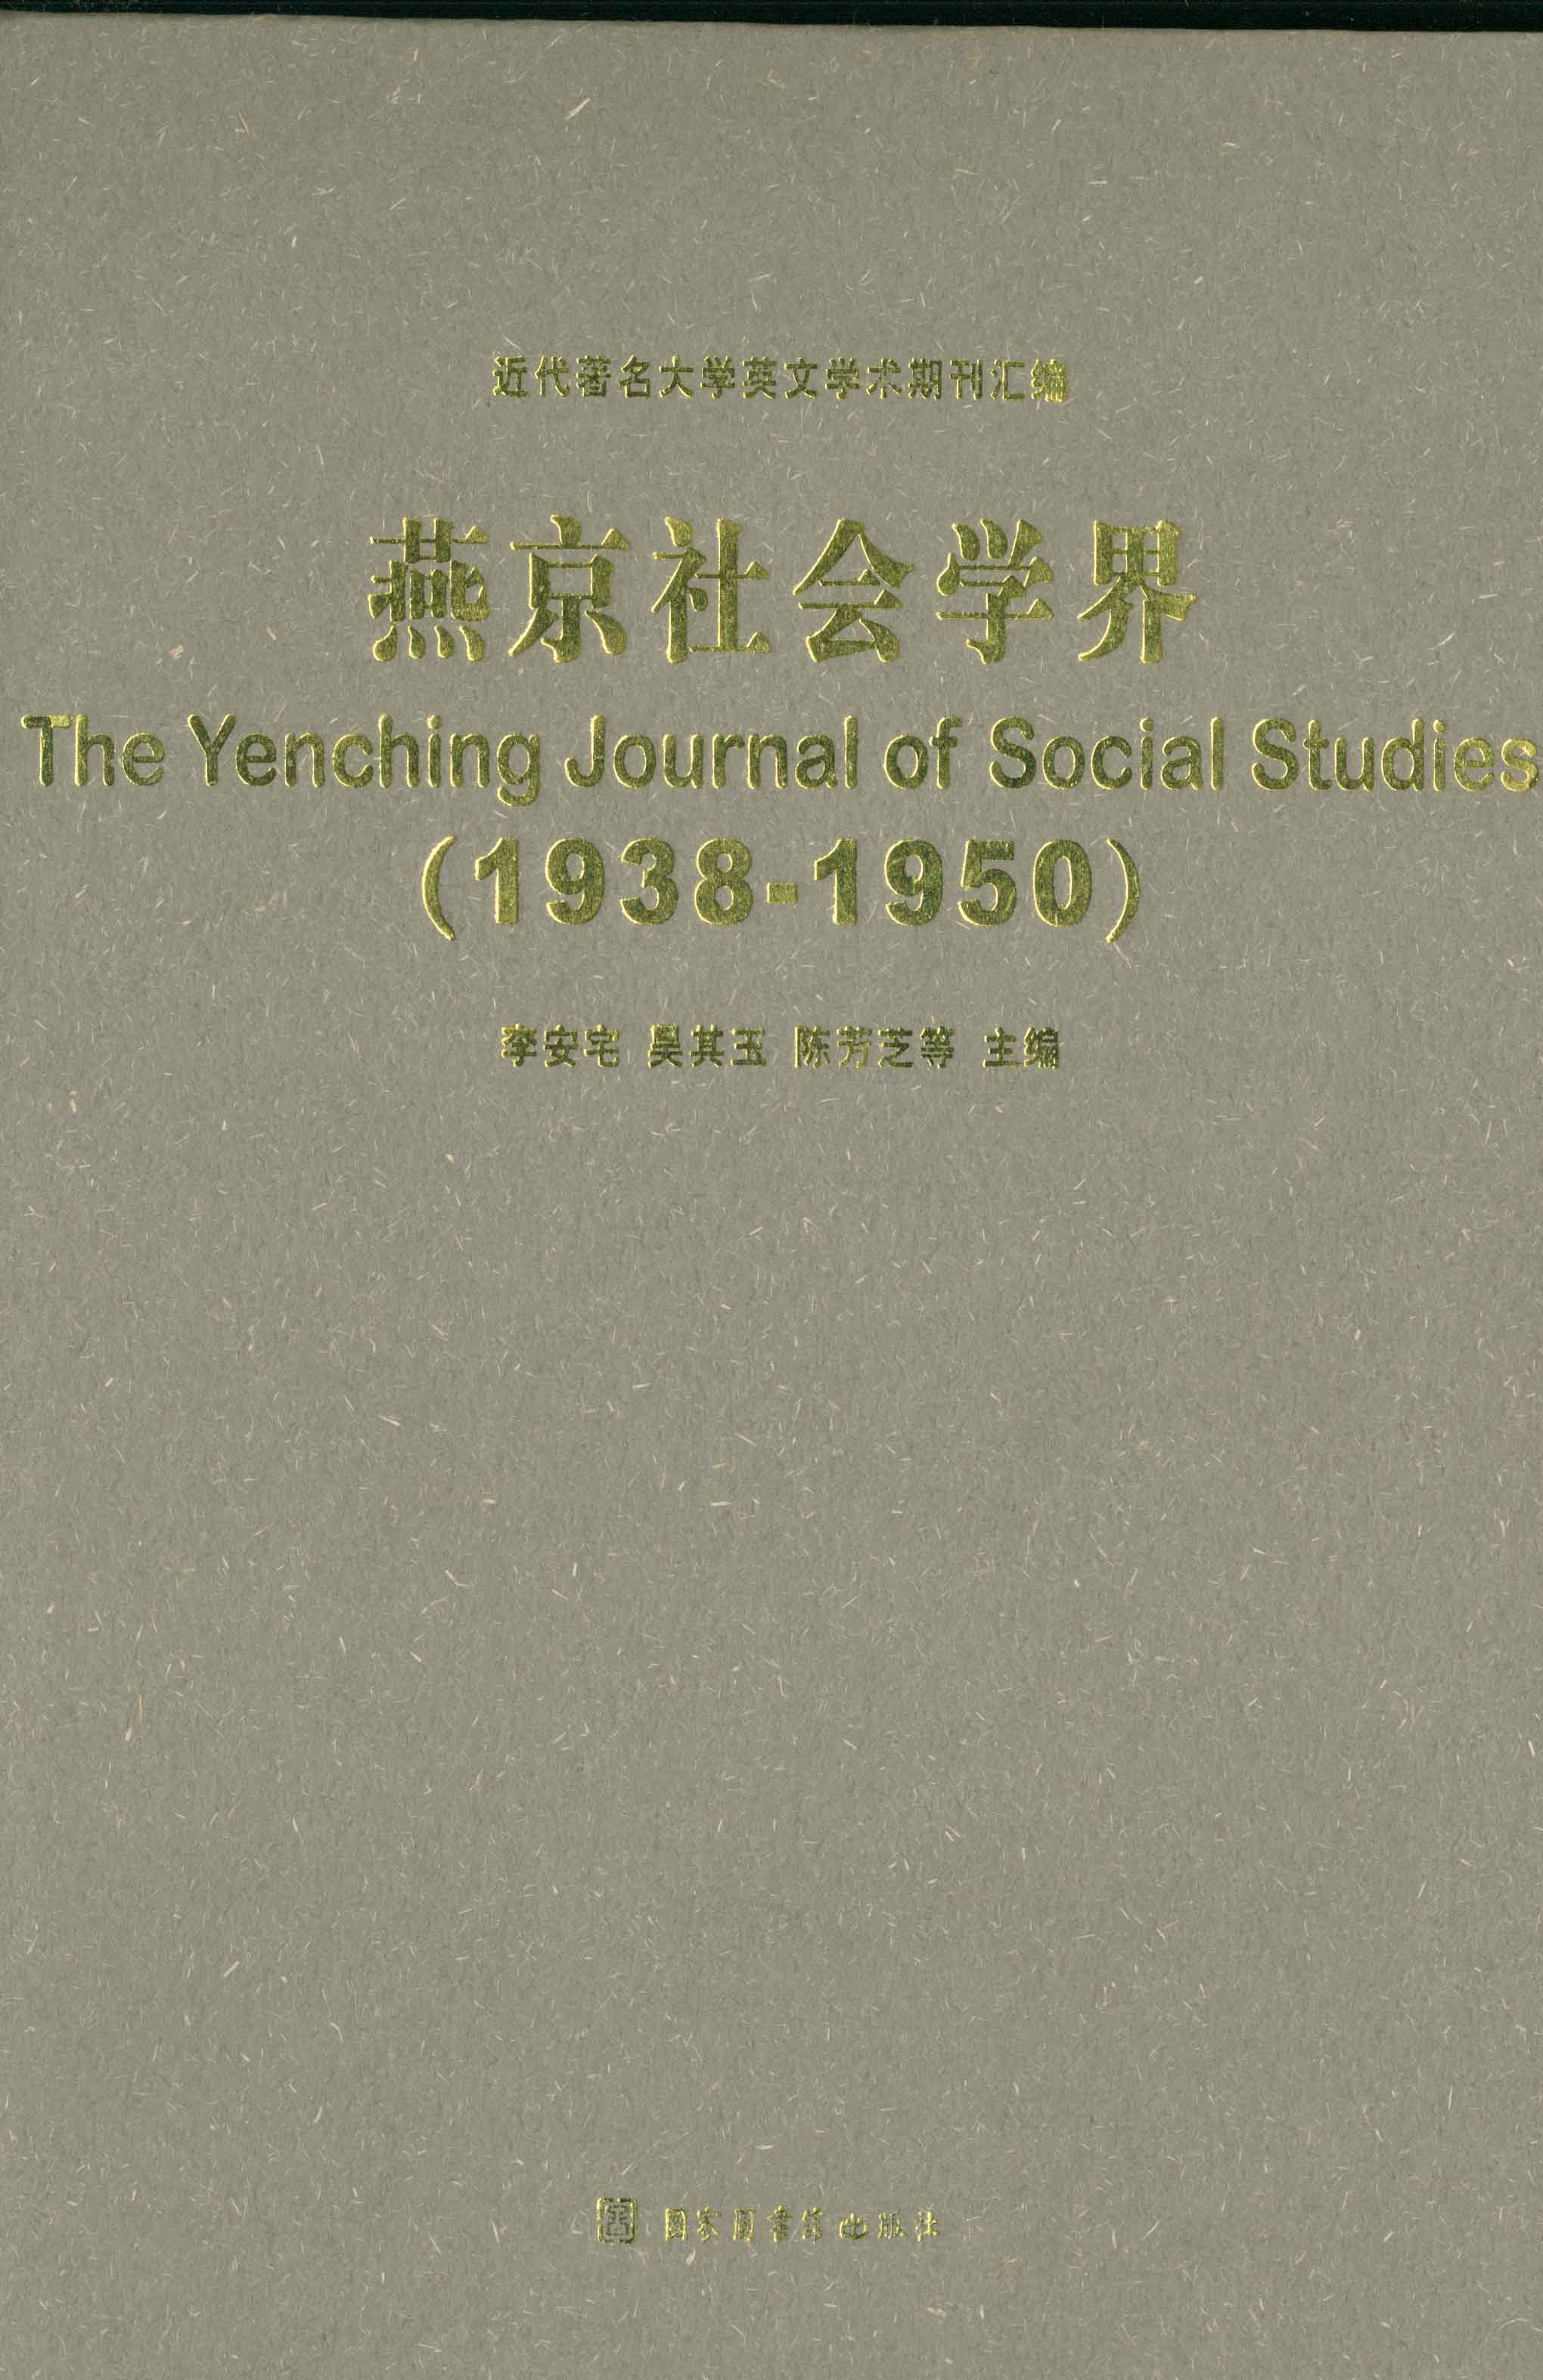 燕京社会学界(The Yenching Journal of Social Studies,1938-1950)(全二册)